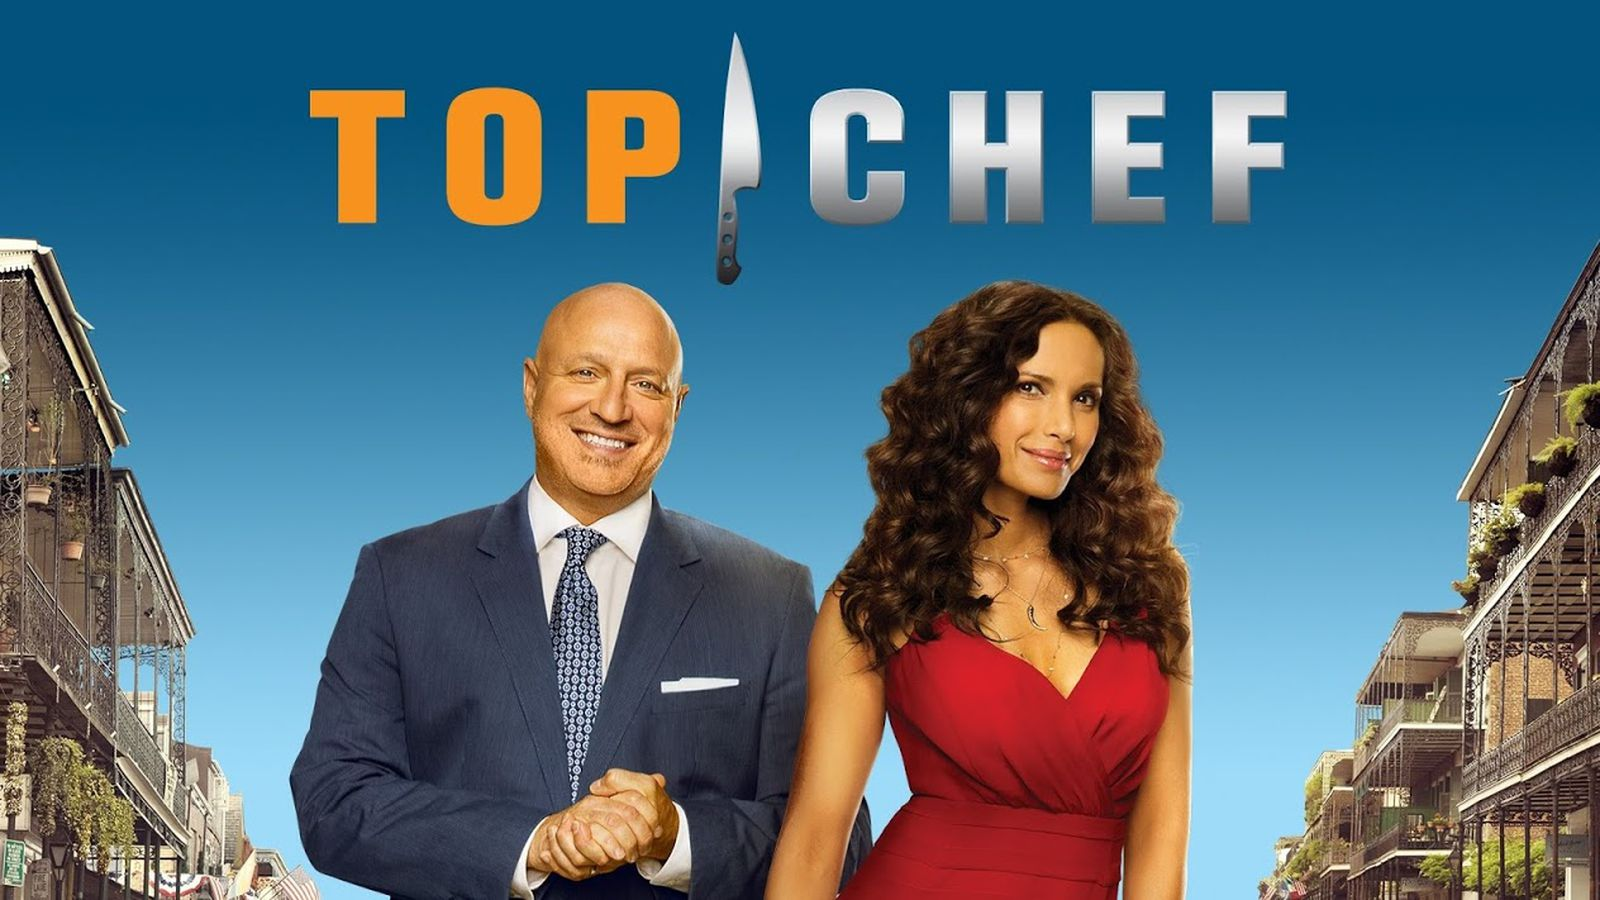 Top Chef: Top Chef Season 13 Begins Casting Nationwide